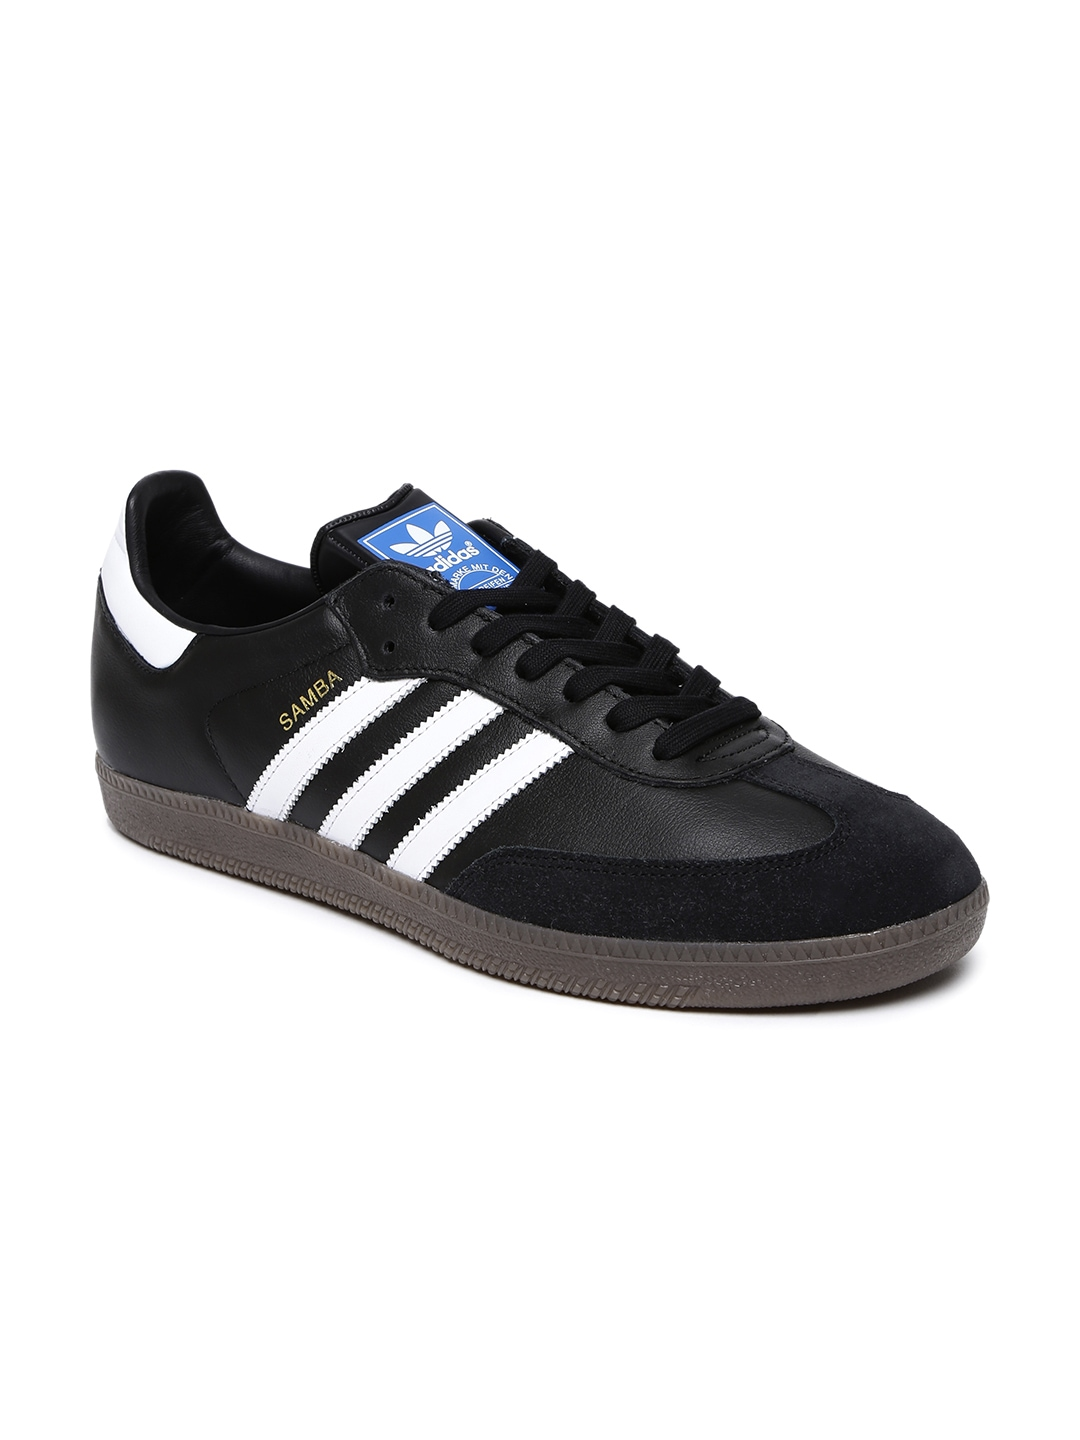 Adidas Sneakers Shoes Myntra